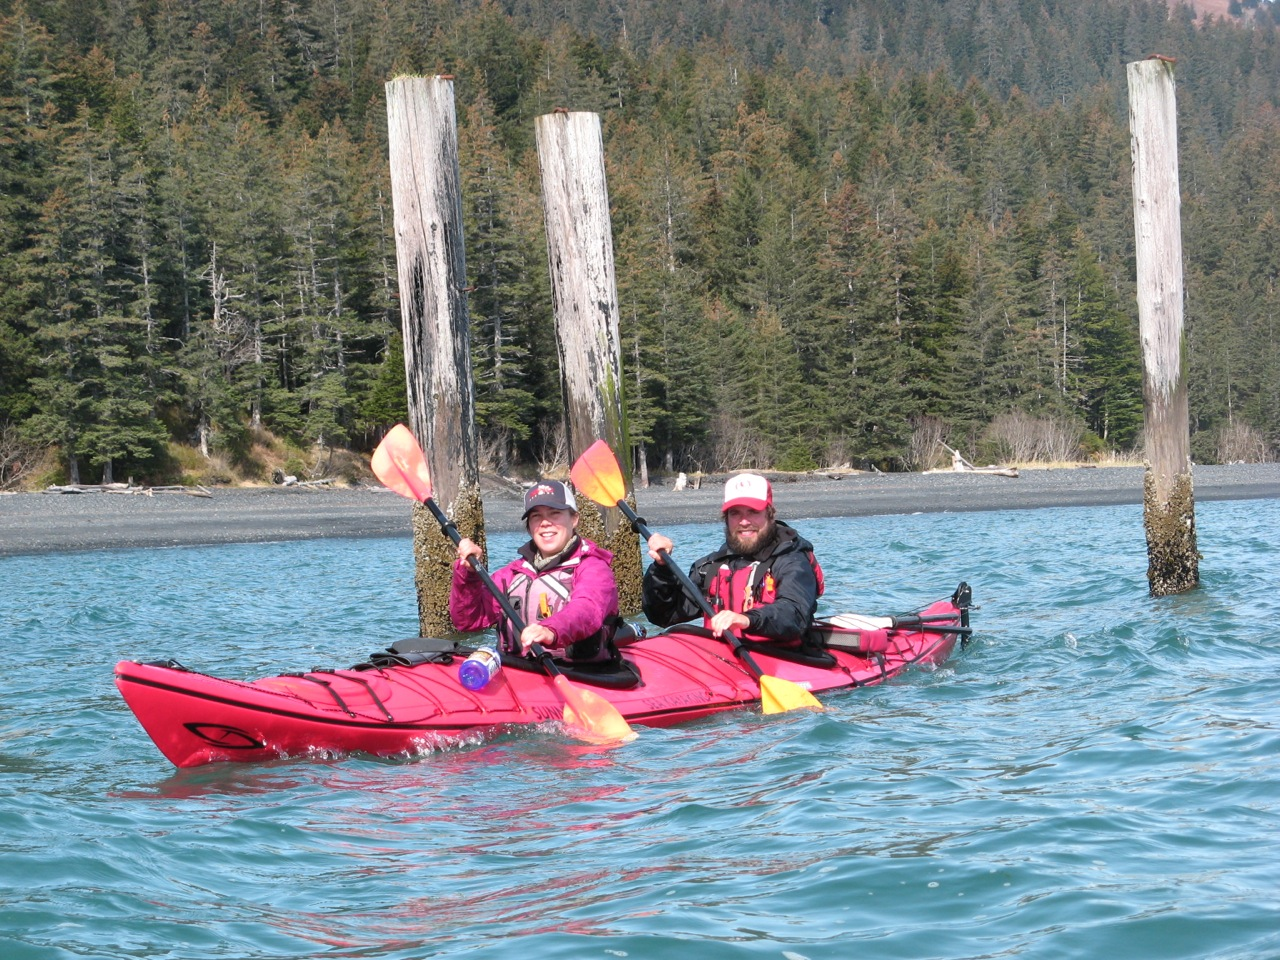 """0   0   1   15   92   Sunny Cove Sea Kayaking   1   1   106   14.0                      Normal   0           false   false   false     EN-US   JA   X-NONE                                                                                                                                                                                                                                                                                                                                                                              /* Style Definitions */ table.MsoNormalTable {mso-style-name:""""Table Normal""""; mso-tstyle-rowband-size:0; mso-tstyle-colband-size:0; mso-style-noshow:yes; mso-style-priority:99; mso-style-parent:""""""""; mso-padding-alt:0in 5.4pt 0in 5.4pt; mso-para-margin:0in; mso-para-margin-bottom:.0001pt; mso-pagination:widow-orphan; font-size:10.0pt; font-family:""""Times New Roman""""; mso-fareast-language:JA;}      Guiding is more then having a good paddle stroke (nicely demonstrated by Kelly Matheny and Bobbie Schultz)."""